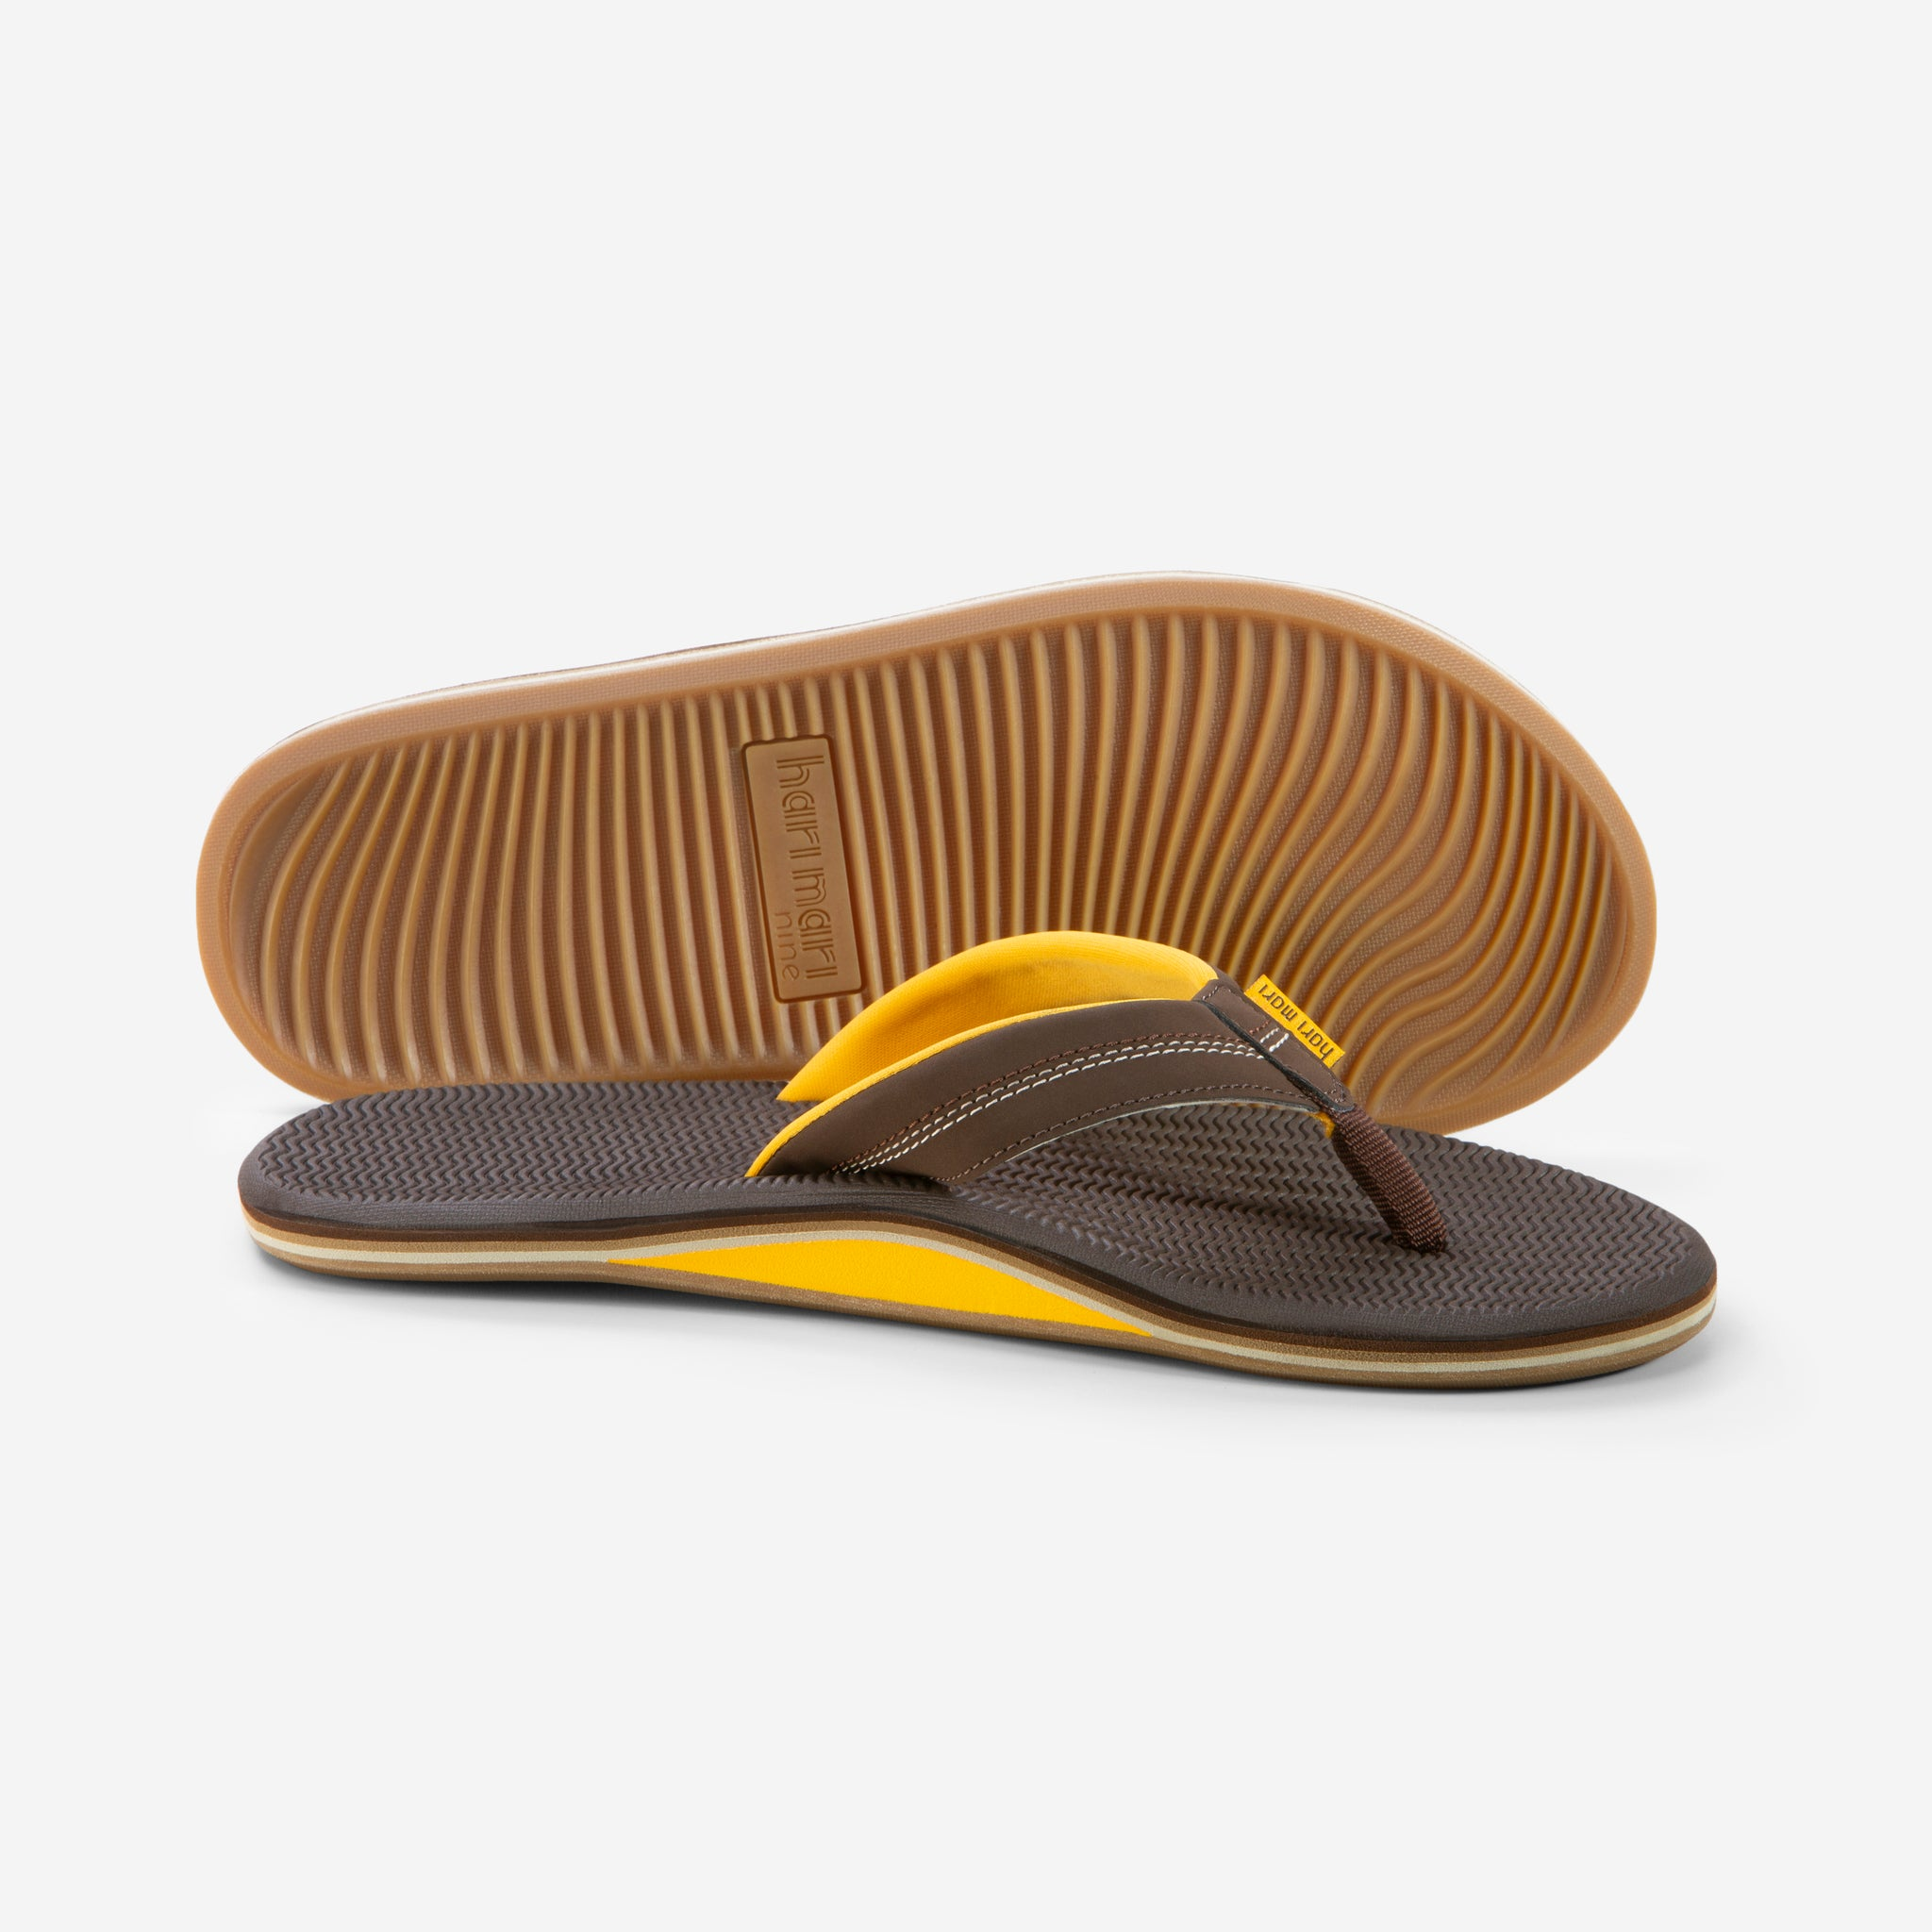 Brazos - Men's - Brown/Gold - Side/Bottom View